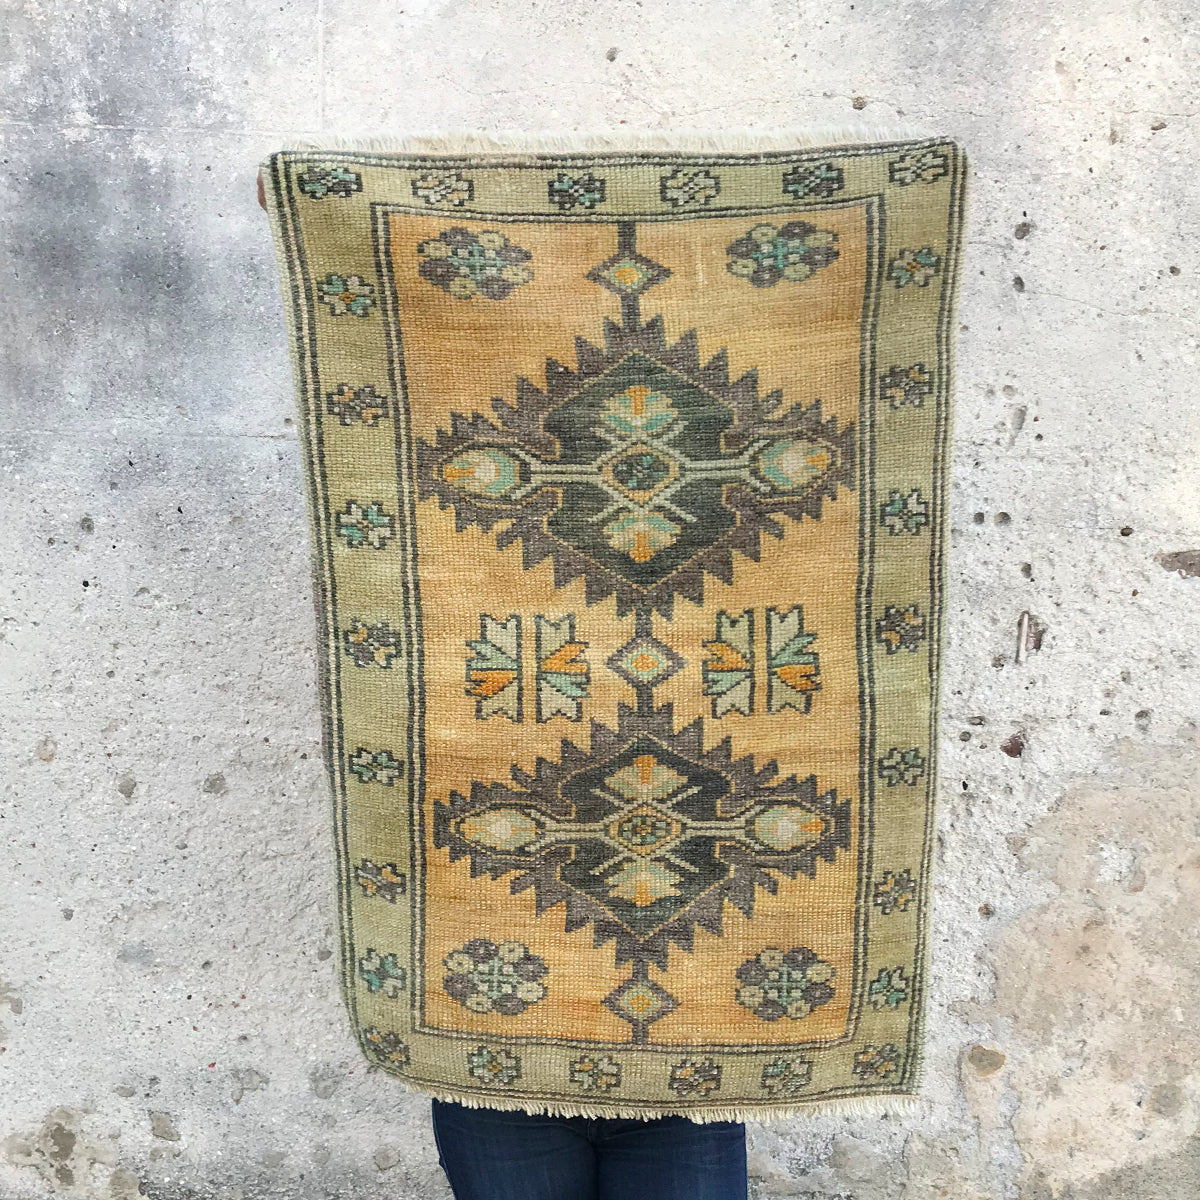 This small handwoven vintage Turkish rug has a yellow, grays and purples in a geometric design. Great for entryways, bathrooms, kitchens and layering. 22x34 inches.